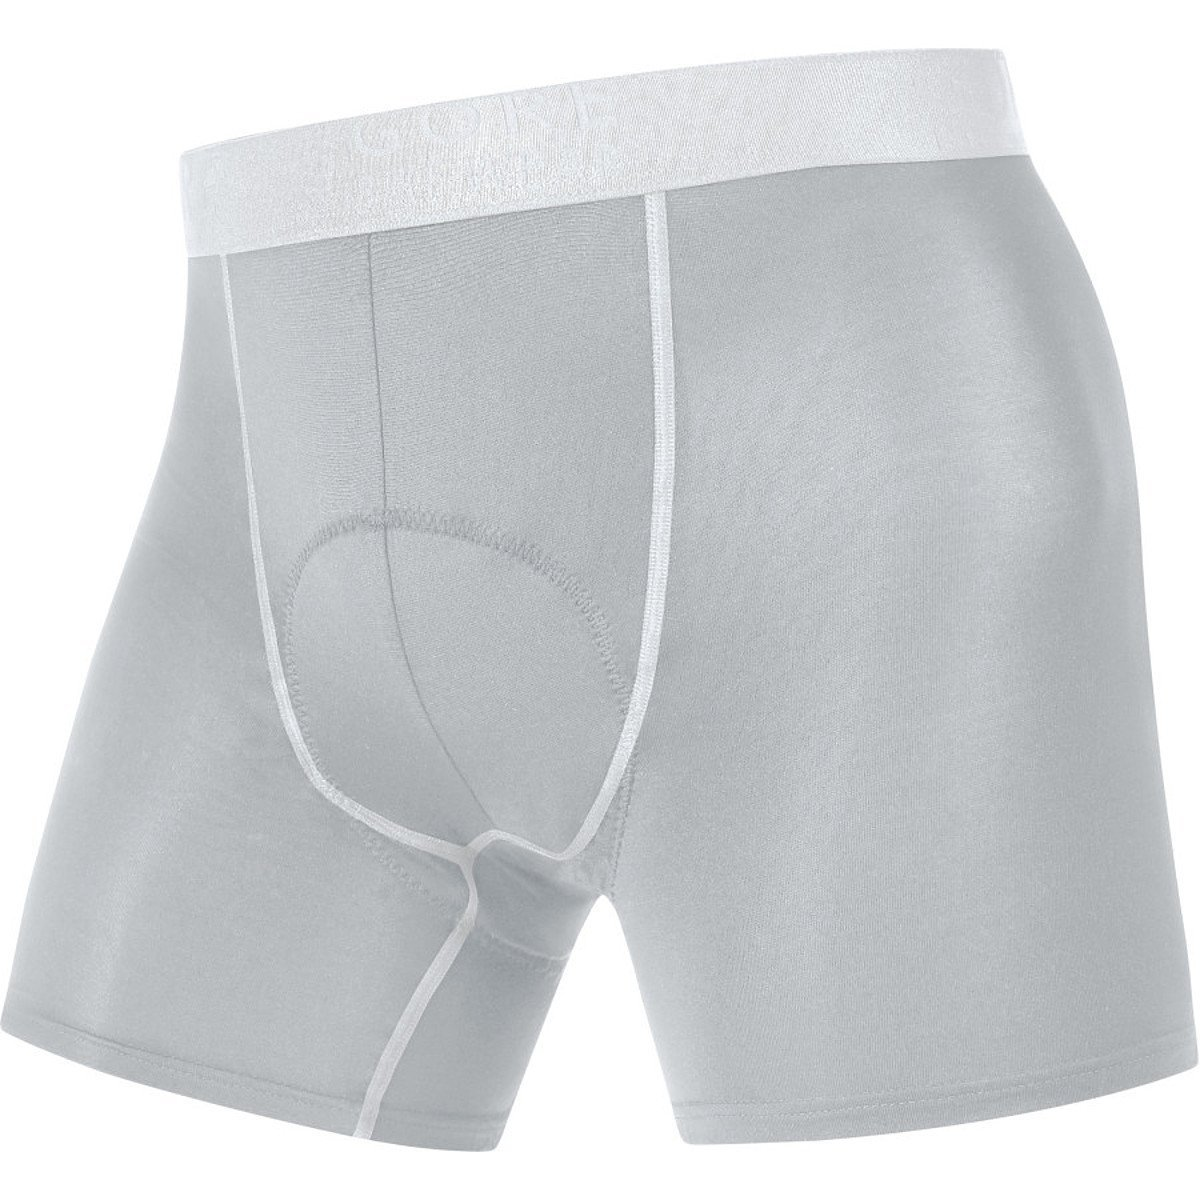 Gore Bike WEAR Men's Base Layer Boxer Shorts+, XXL, Titan/White by GORE WEAR